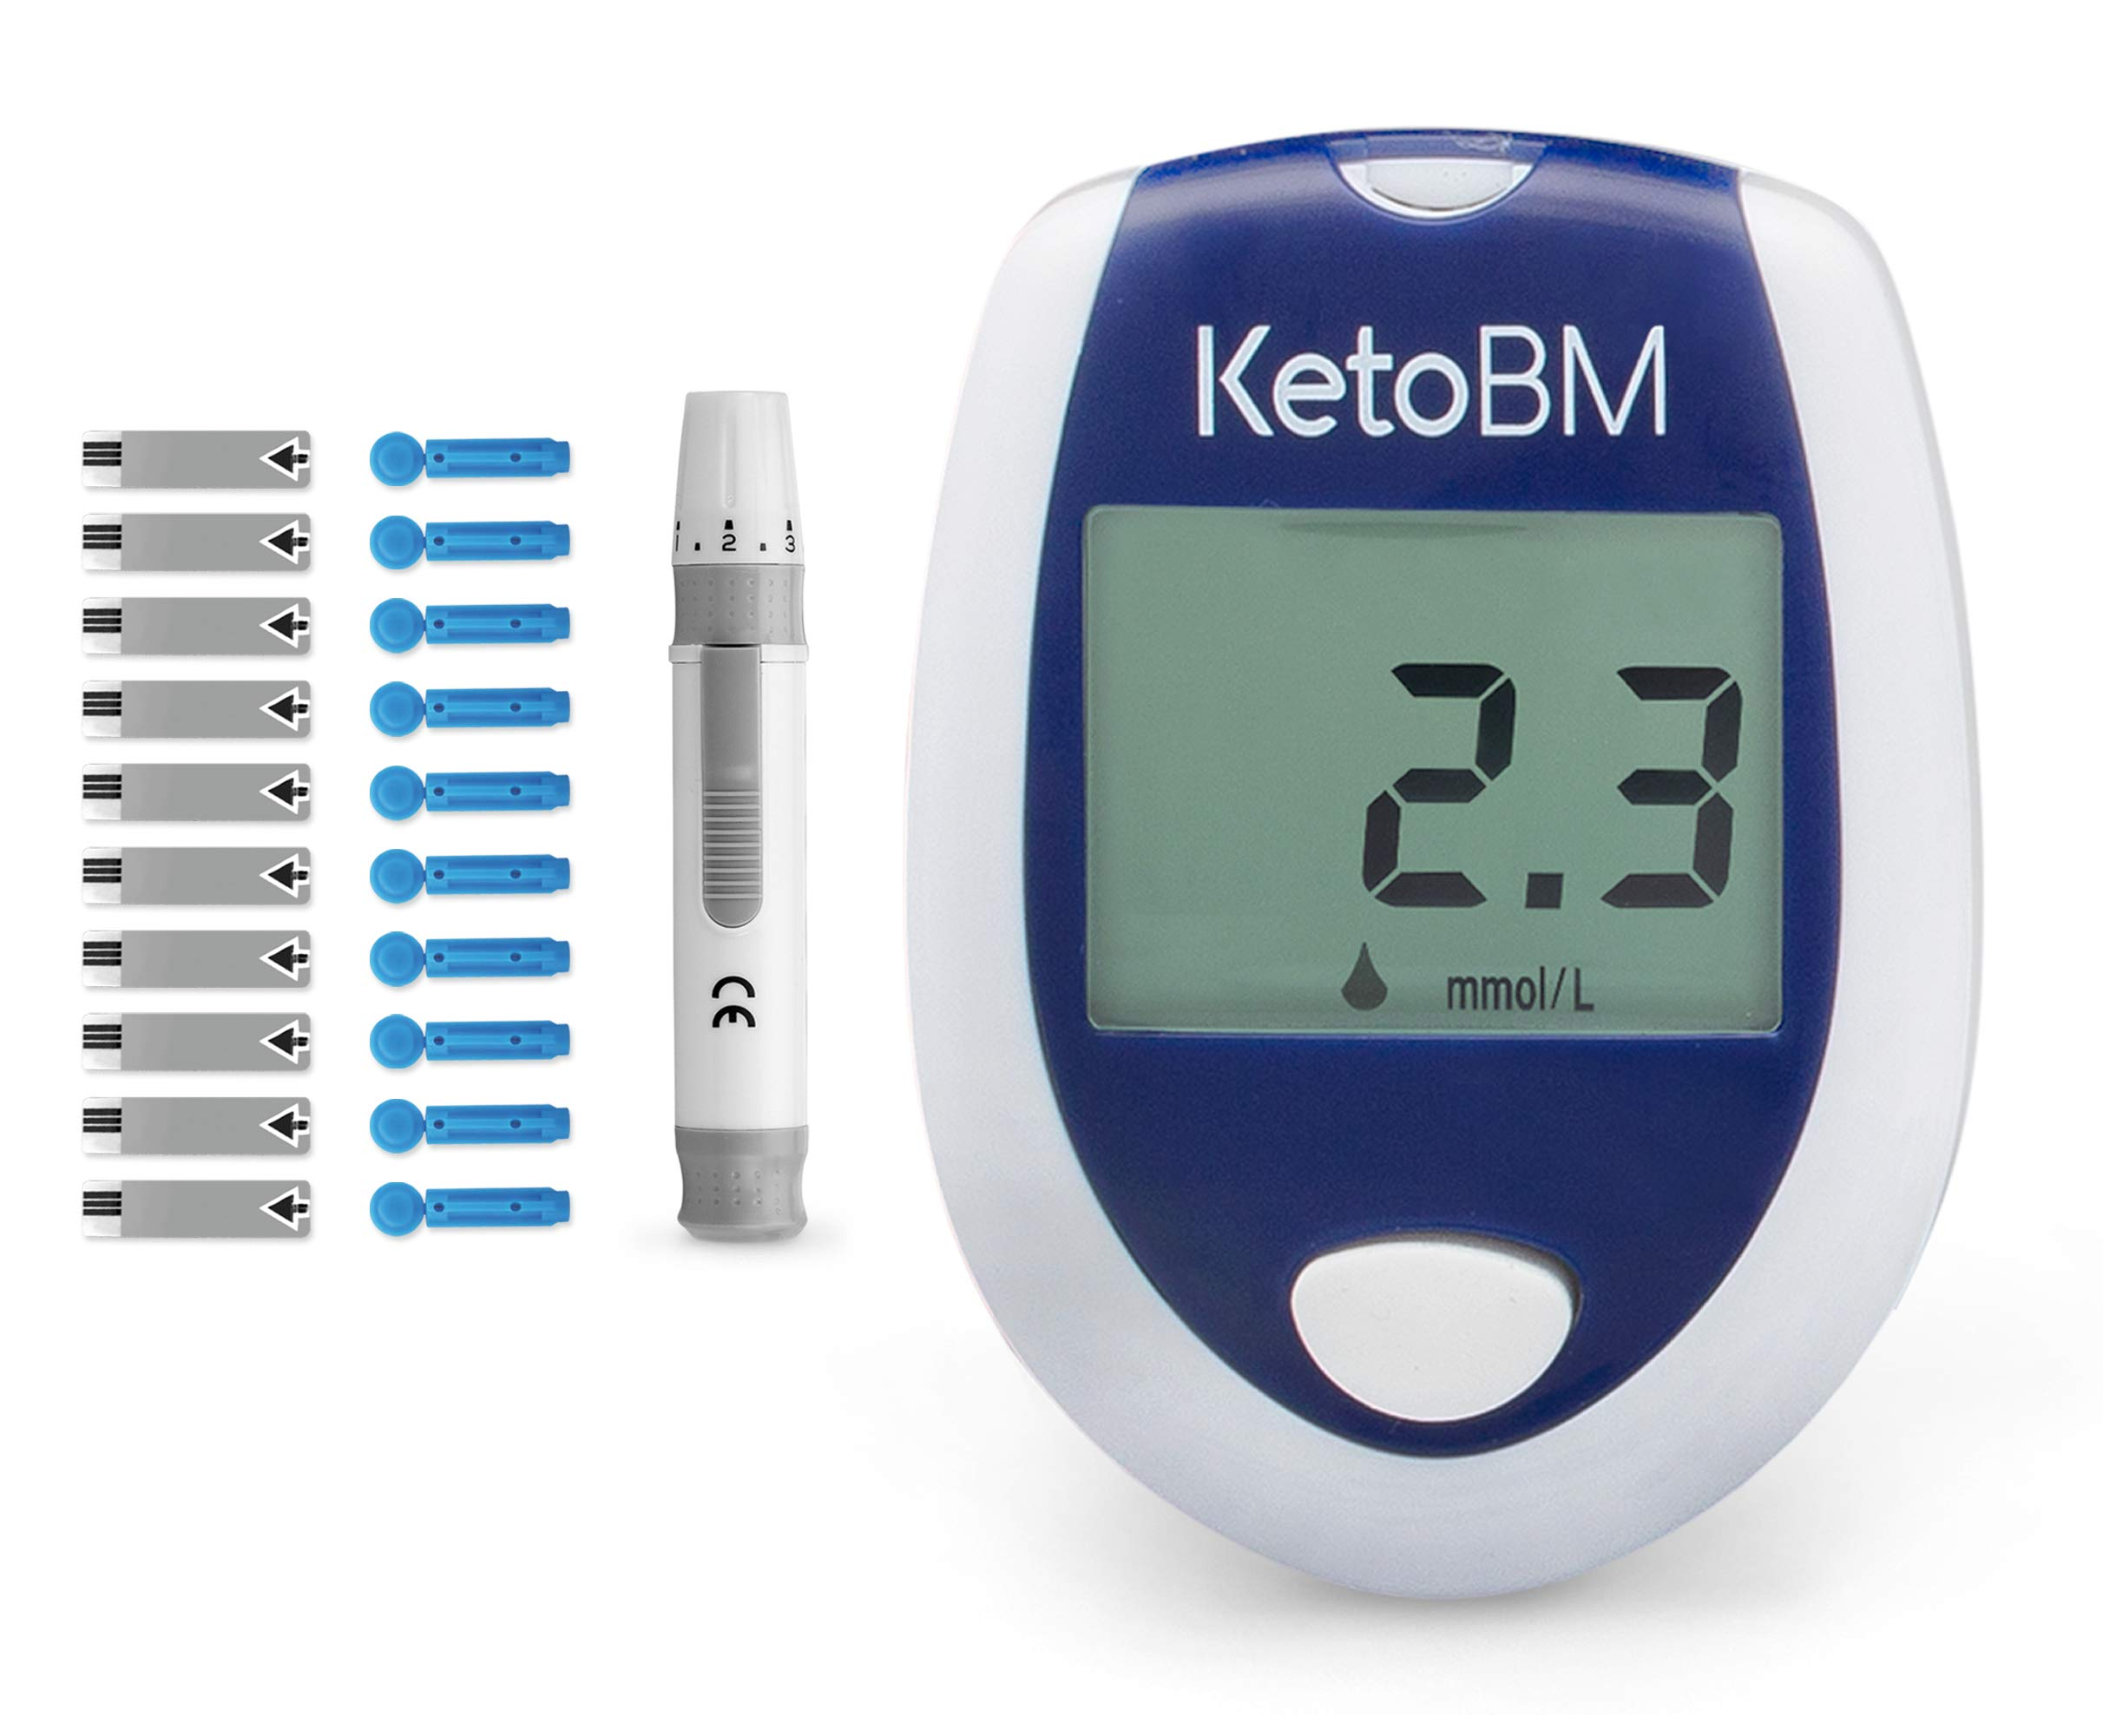 KetoBM Blood Ketone Meter Kit for Keto Diet Testing - Complete Ketone Test Kit with Ketone Monitor, Keto Strips, Lancing Device & Lancets - Easy, Accurate Way to Check Ketosis on the Ketogenic Diet